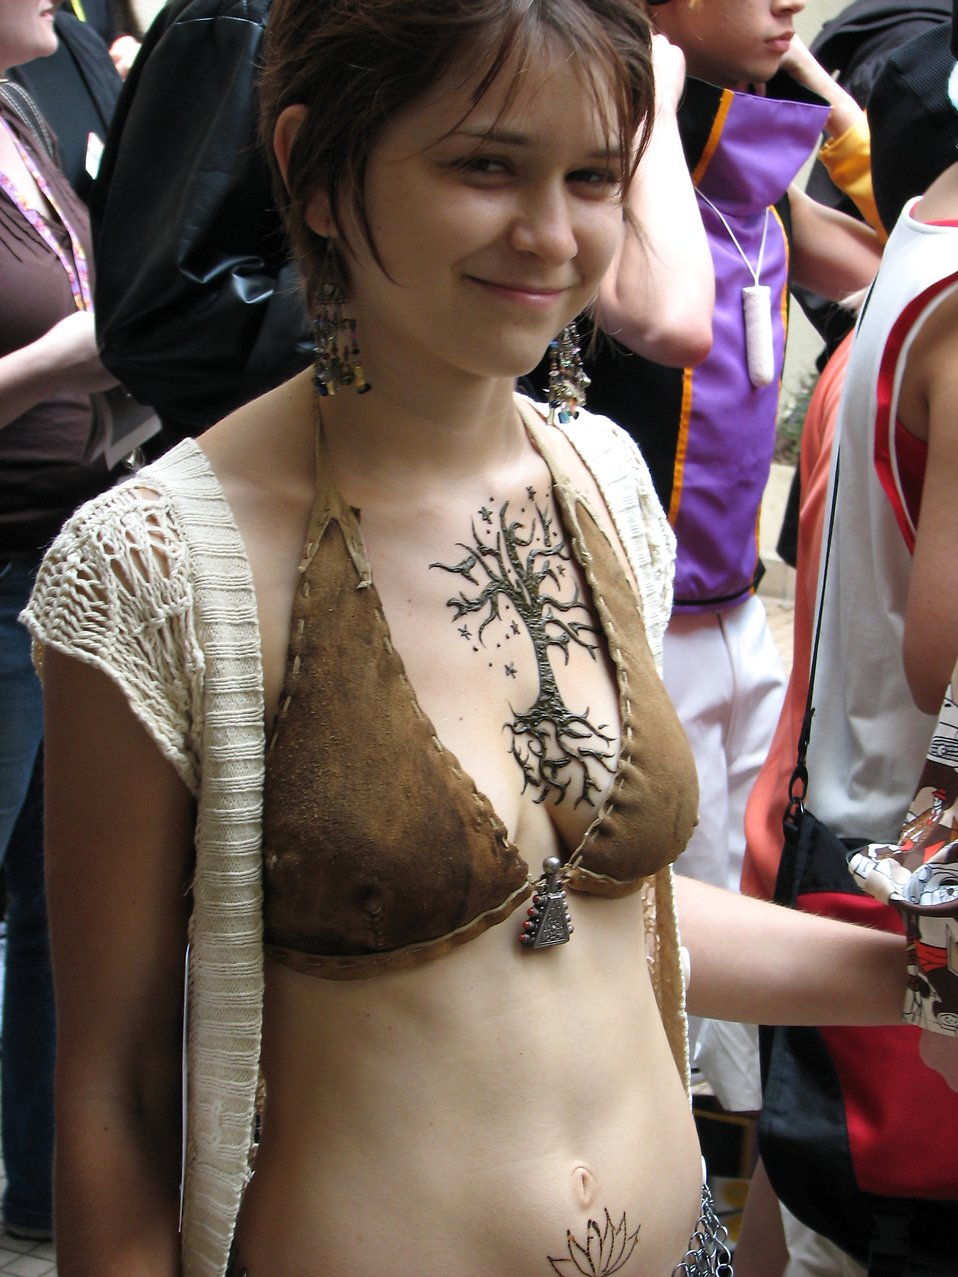 Beautiful girl in costume with tattoo at Dragoncon 2008 : Free Stock Photo